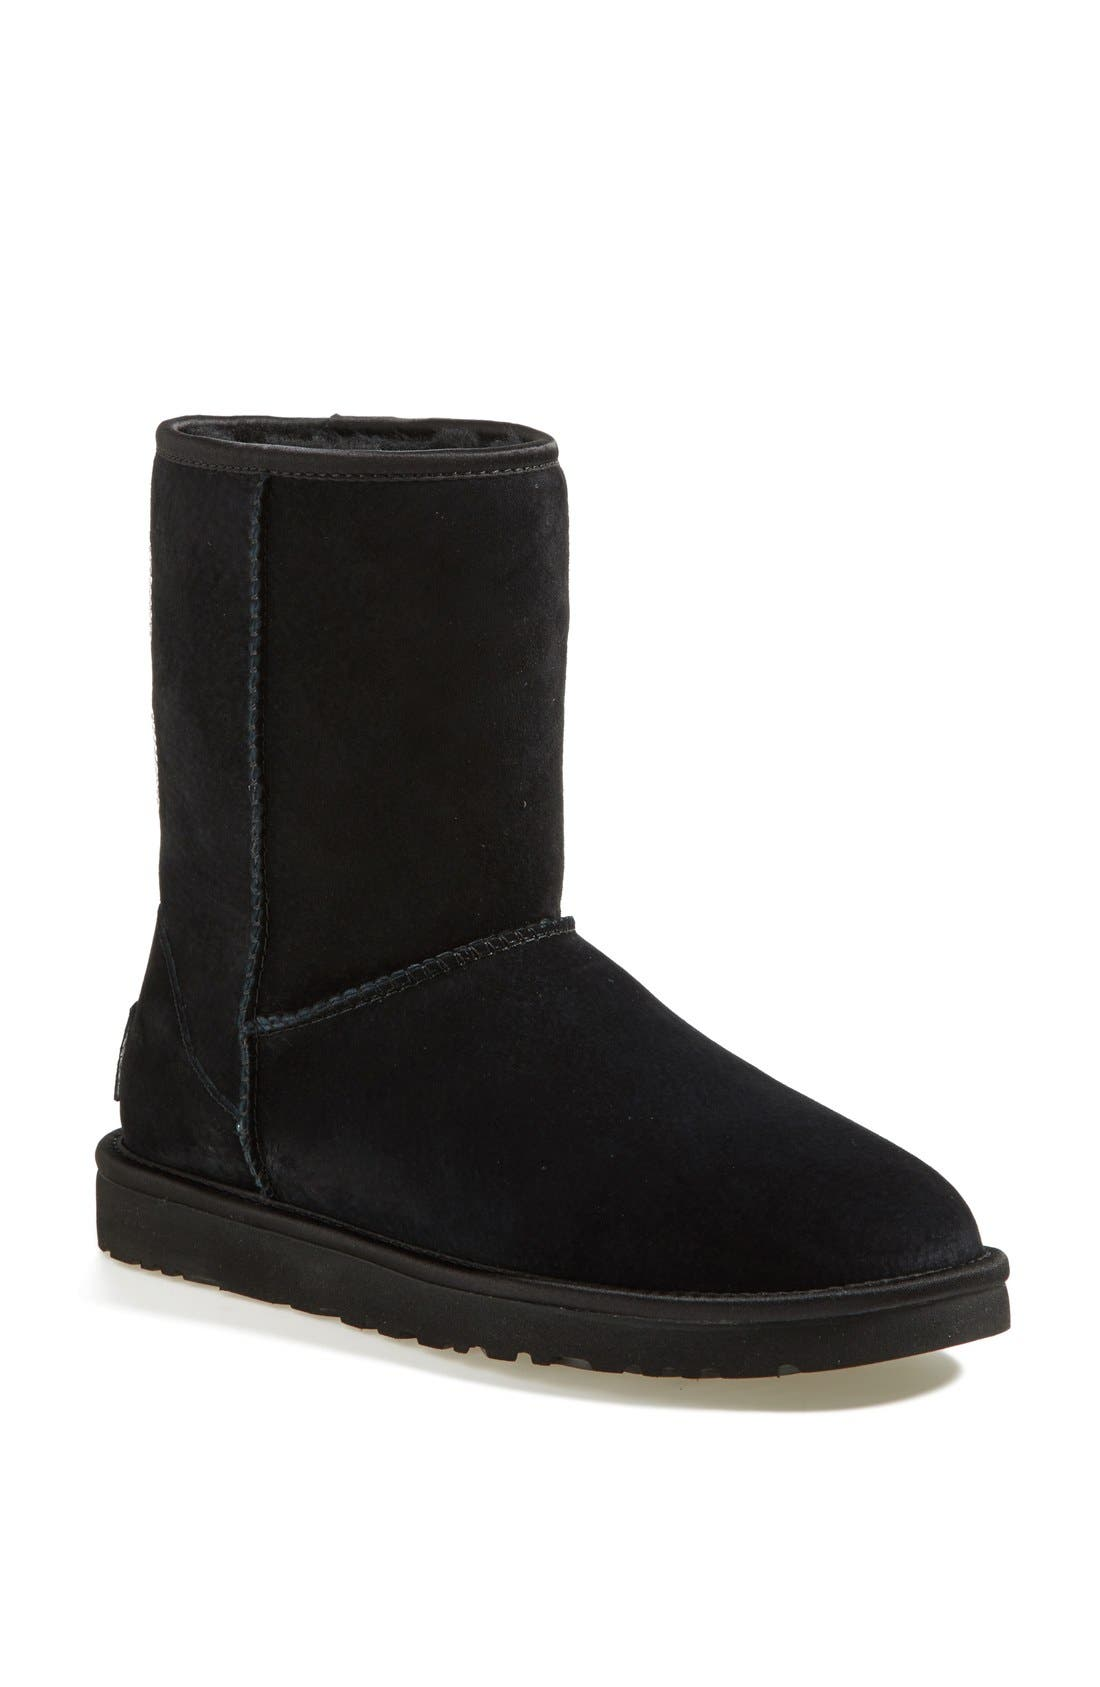 Alternate Image 1 Selected - UGG® Australia 'Classic Short - Crystal Bow' Water Resistant Suede Boot (Women)